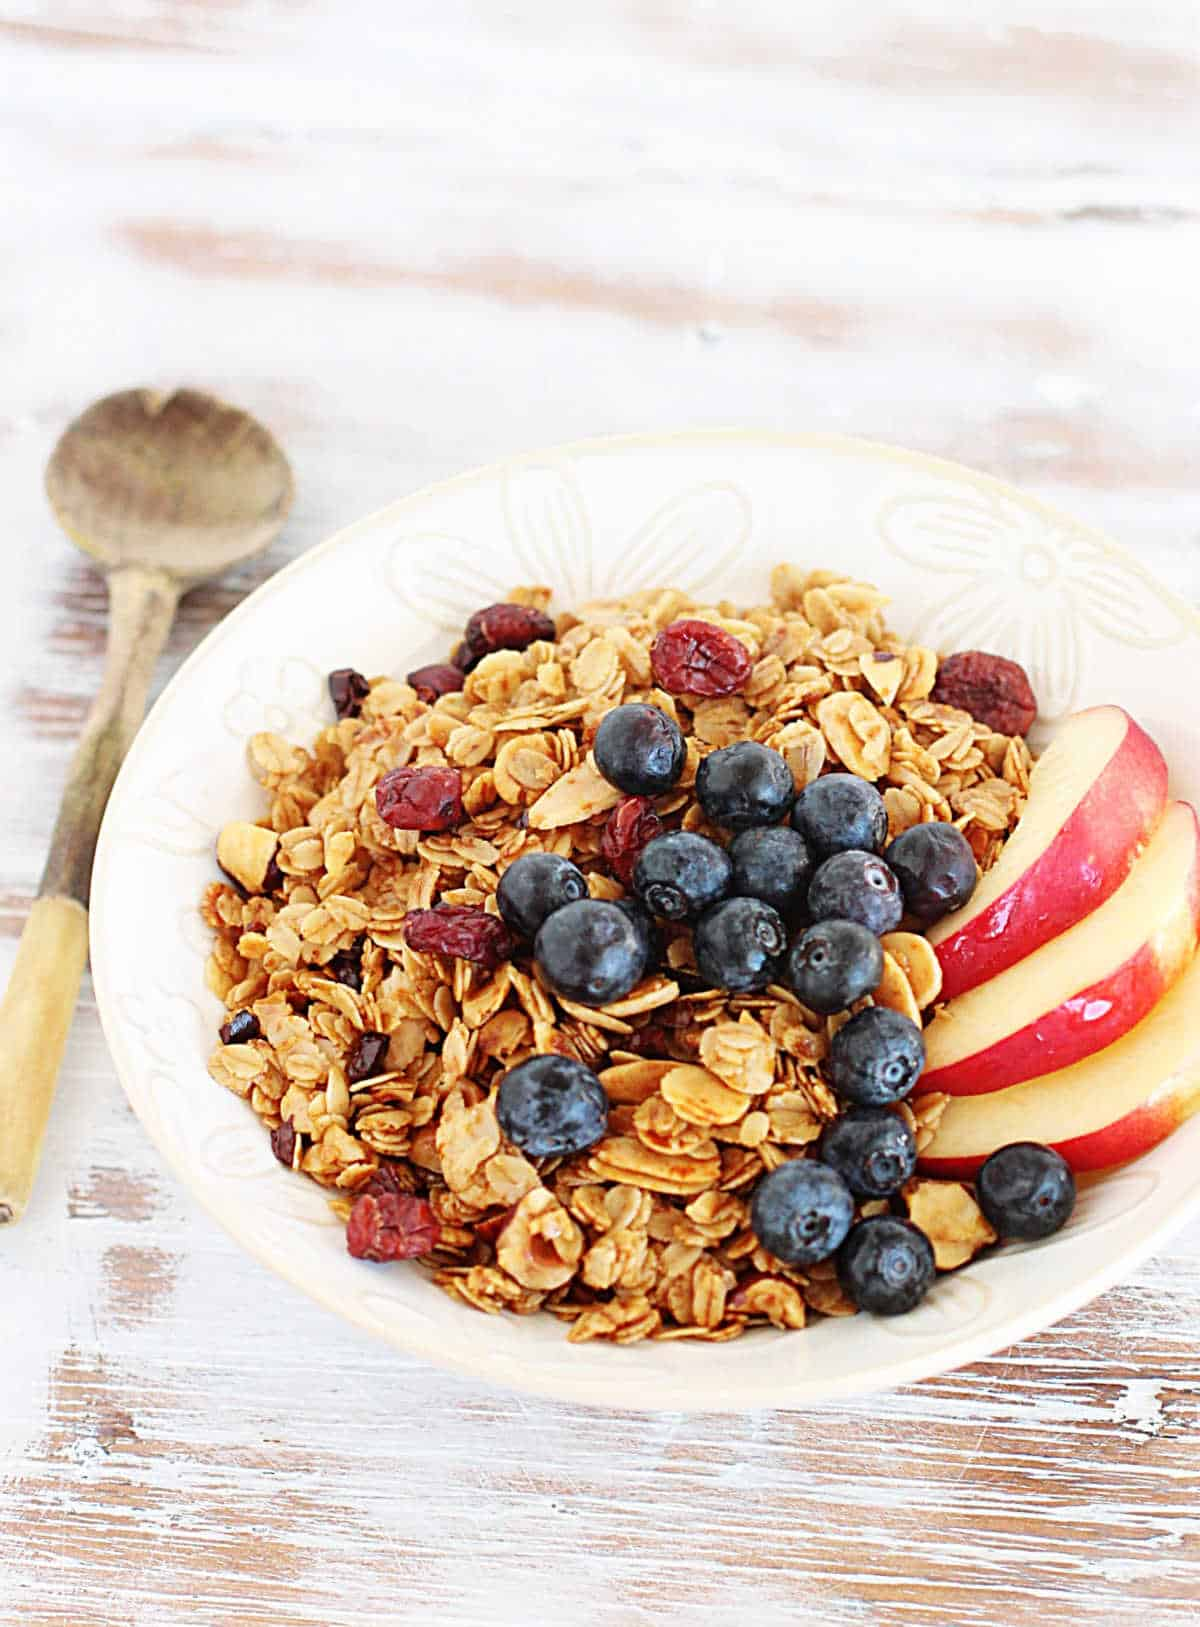 Whitish table with white bowl with granola and fruit, a wooden spoon beside it